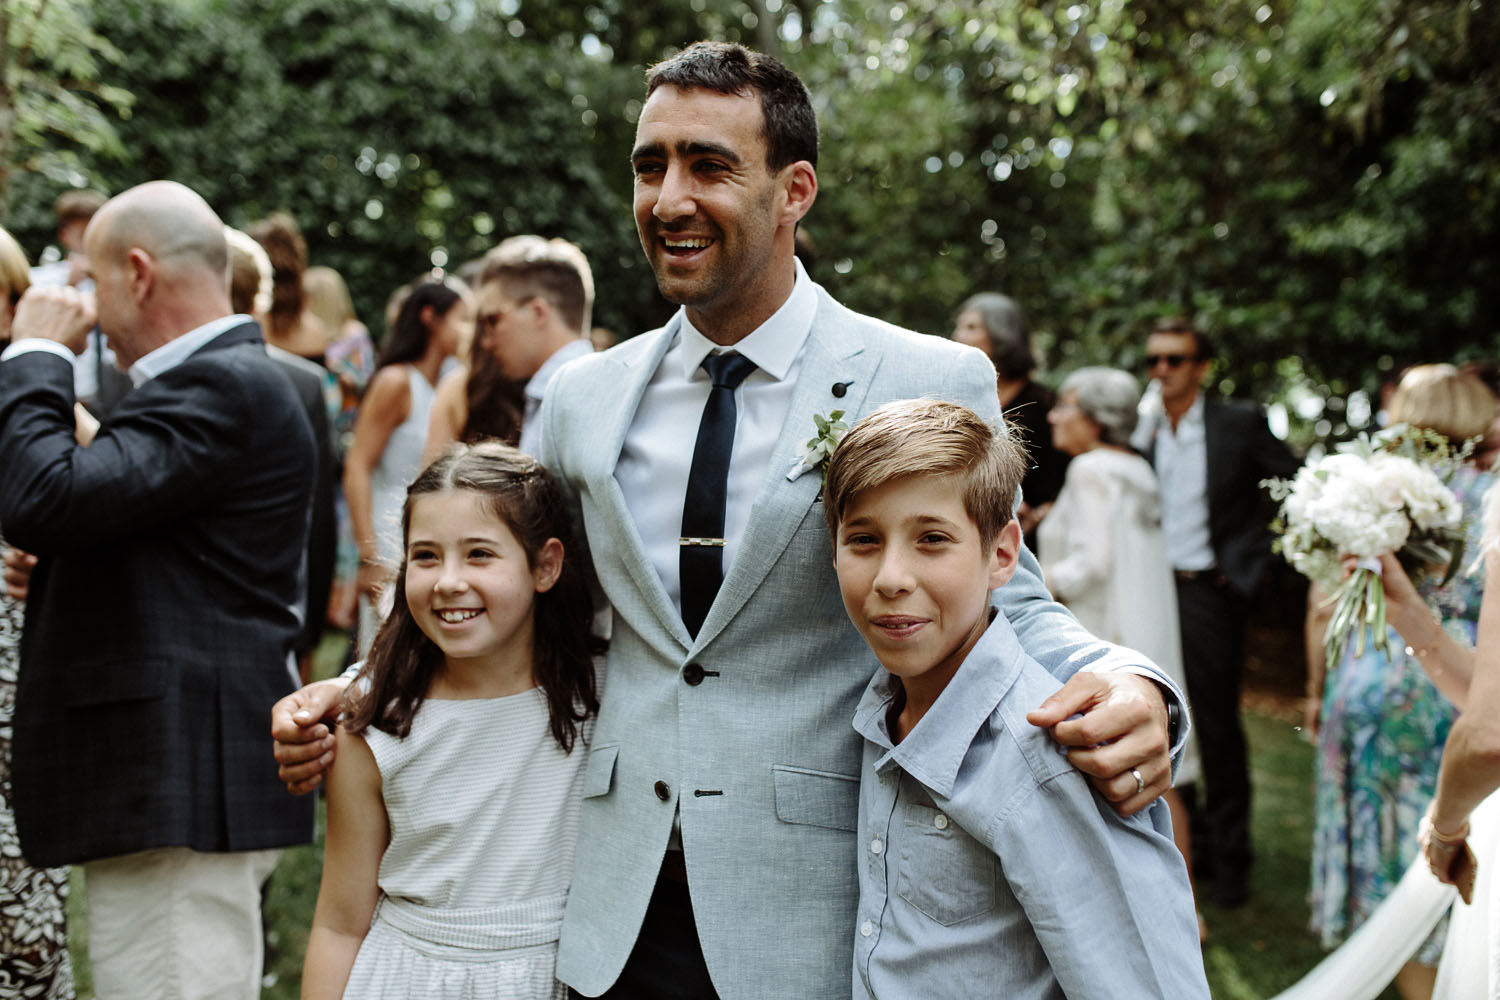 groom laughing with kids